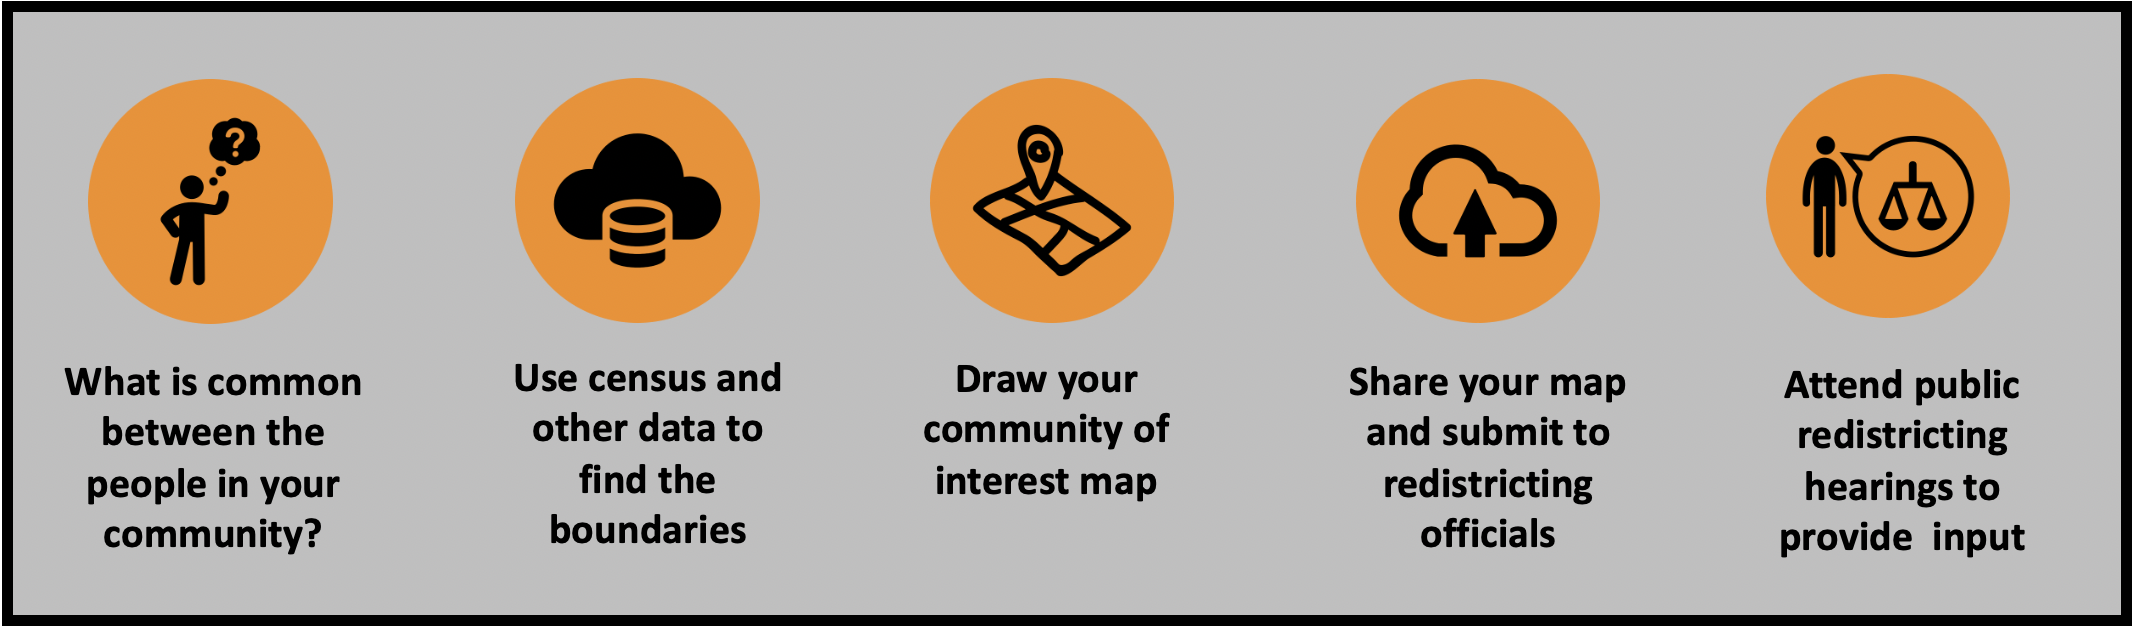 Draw community of interest maps to make sure you are fairly represented and to fight gerrymandering